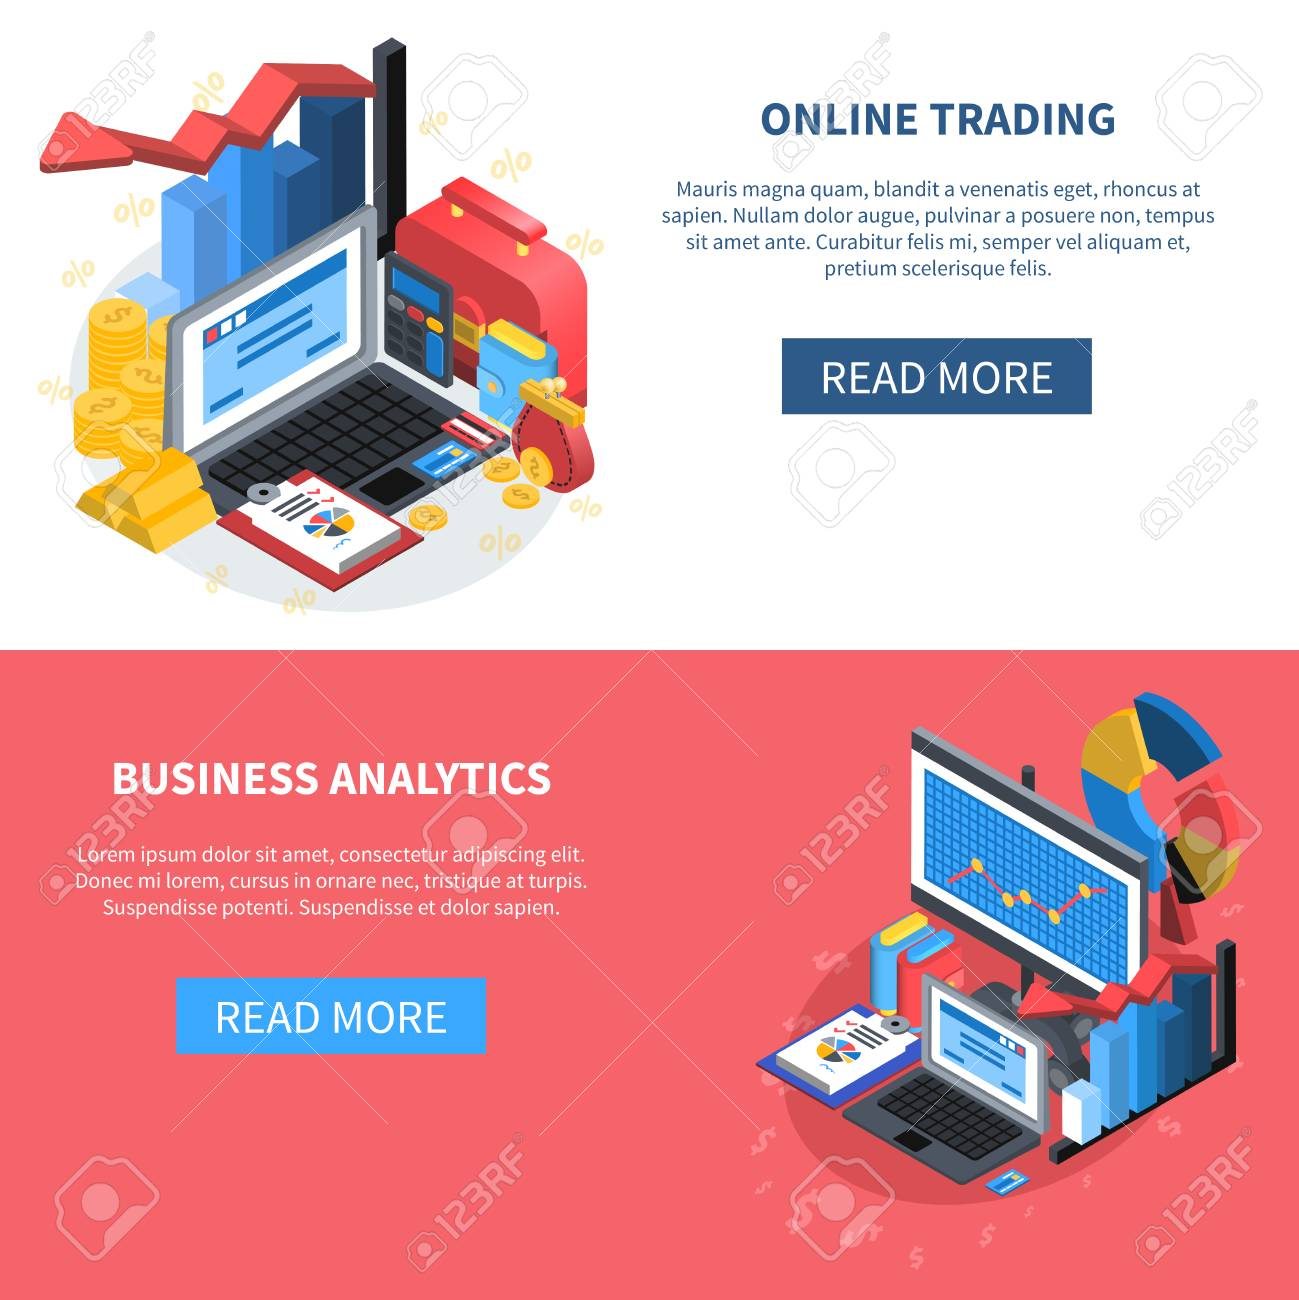 Business Analytic Banners Panda Banners